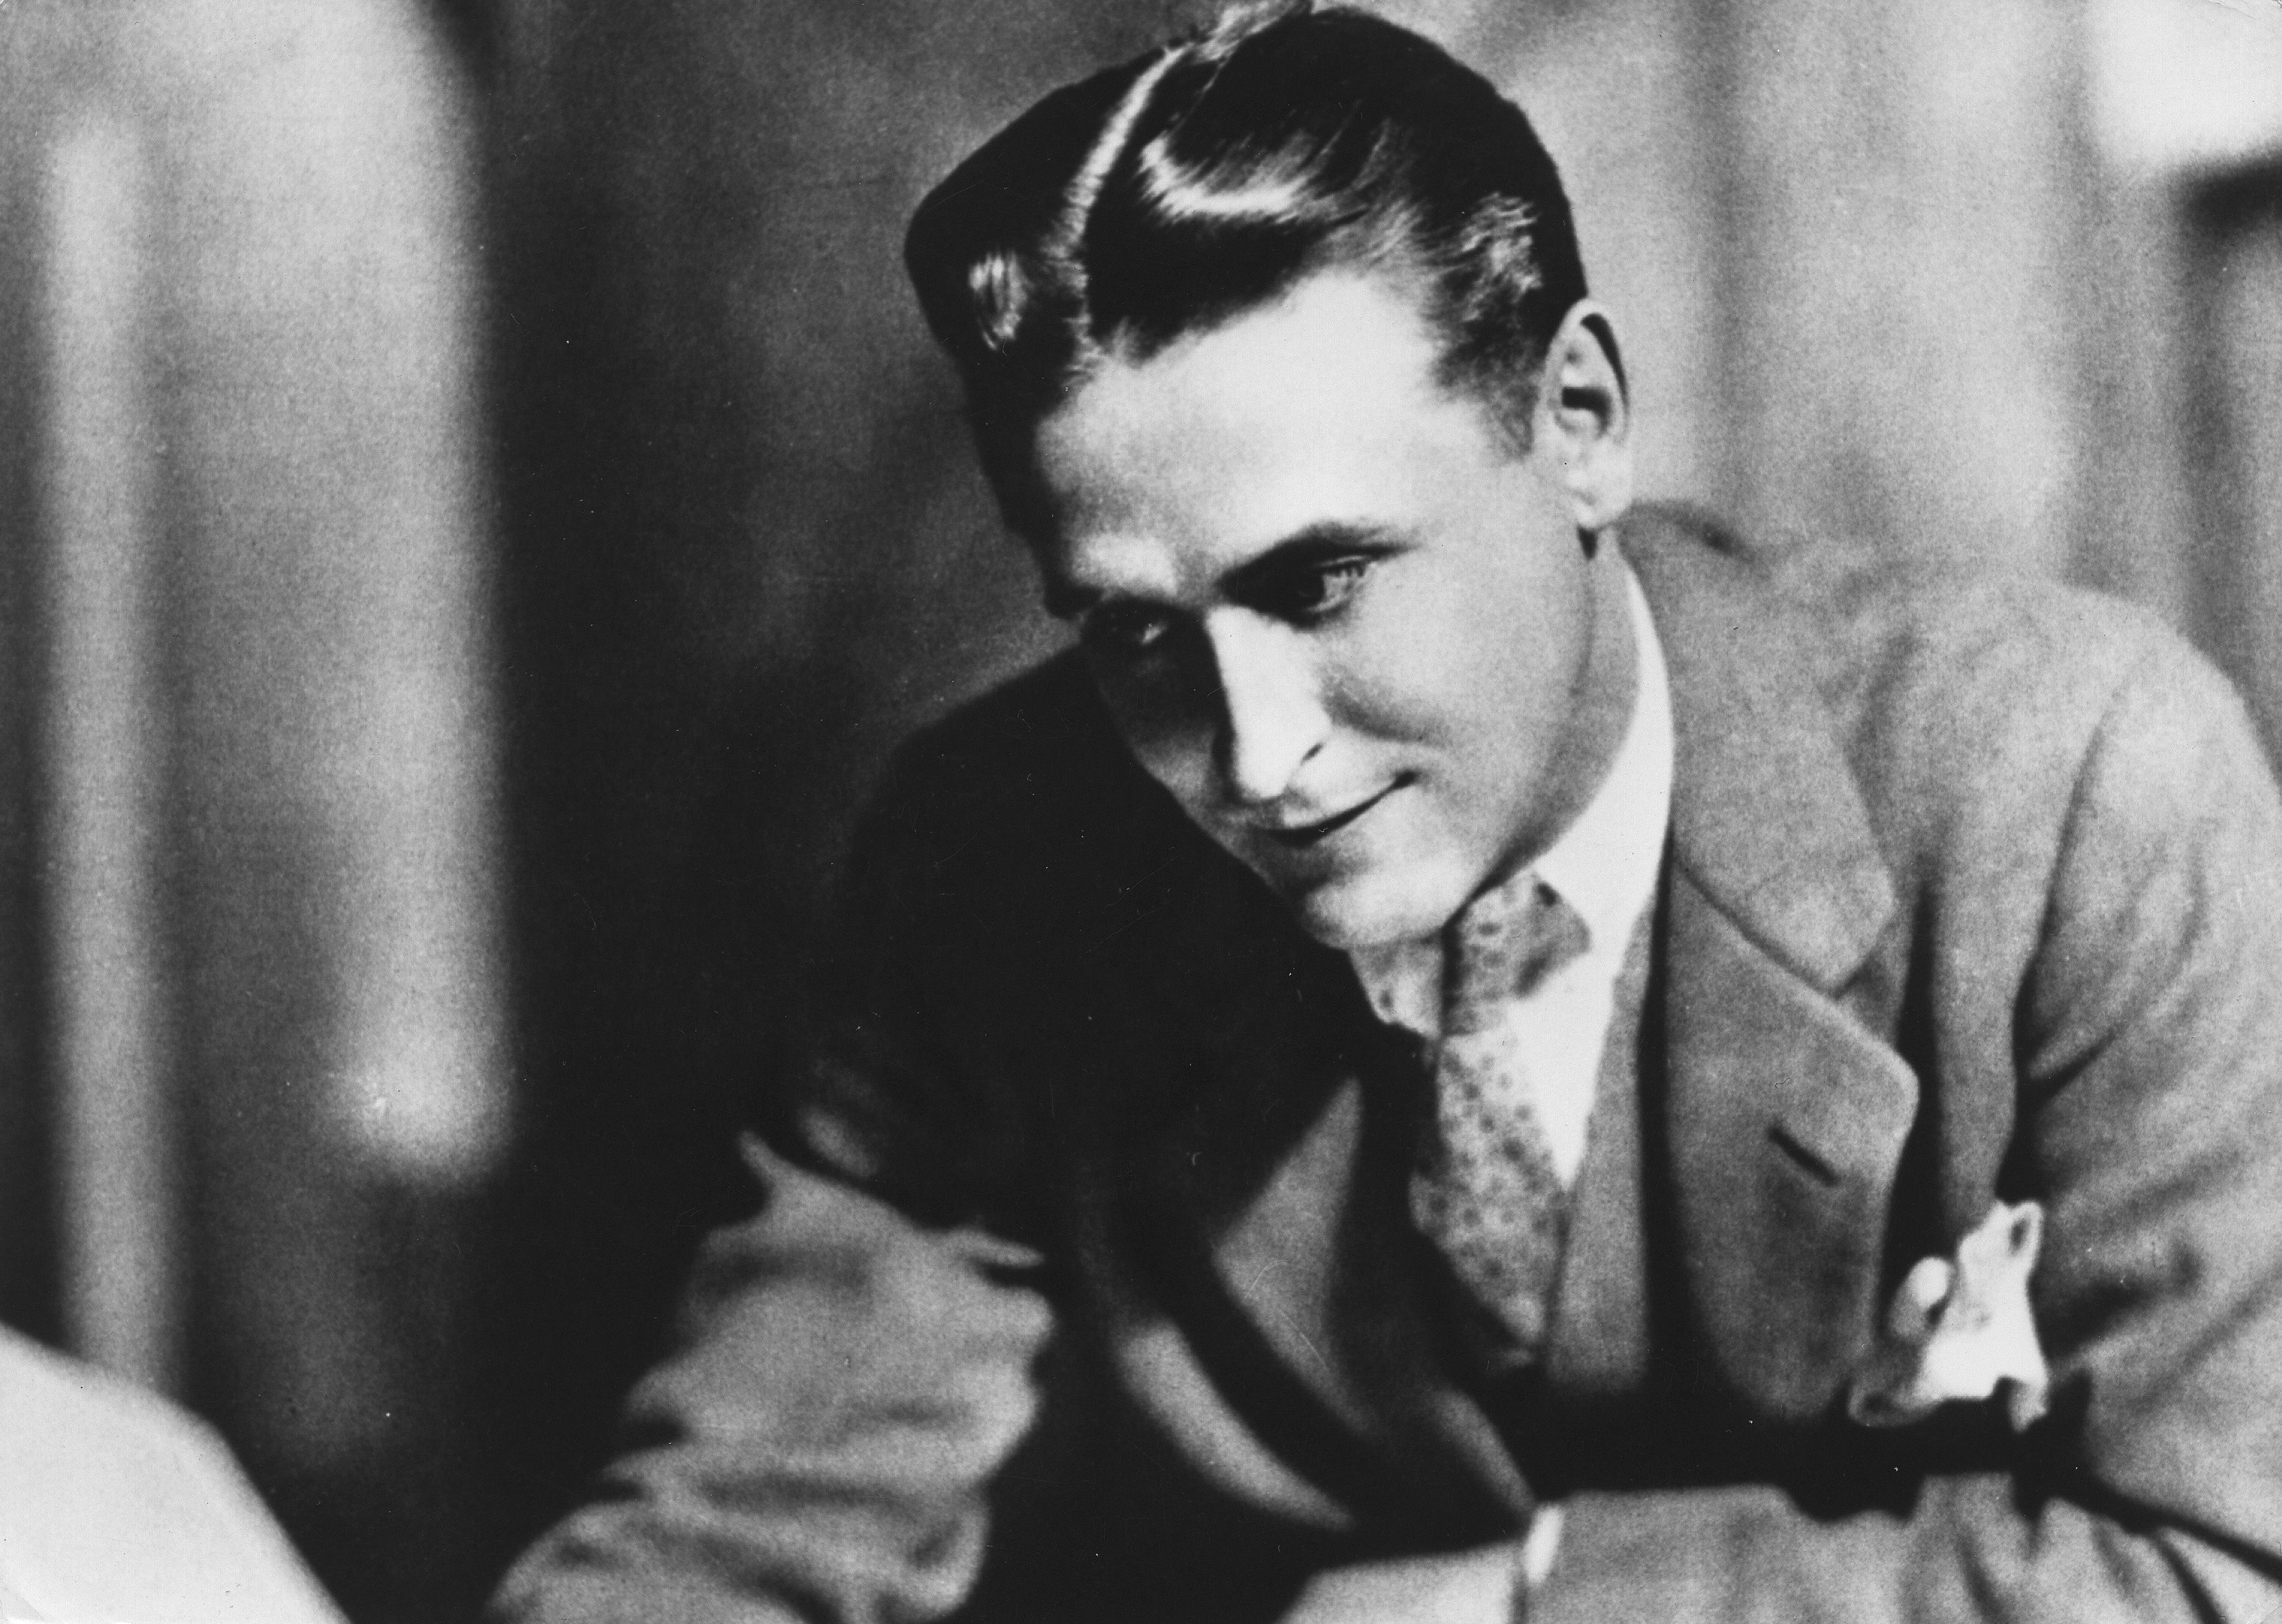 f scott fitzgerald essay f scott fitzgerald facts things you didn  f scott fitzgerald facts things you didn t know about f scott f scott fitzgerald facts